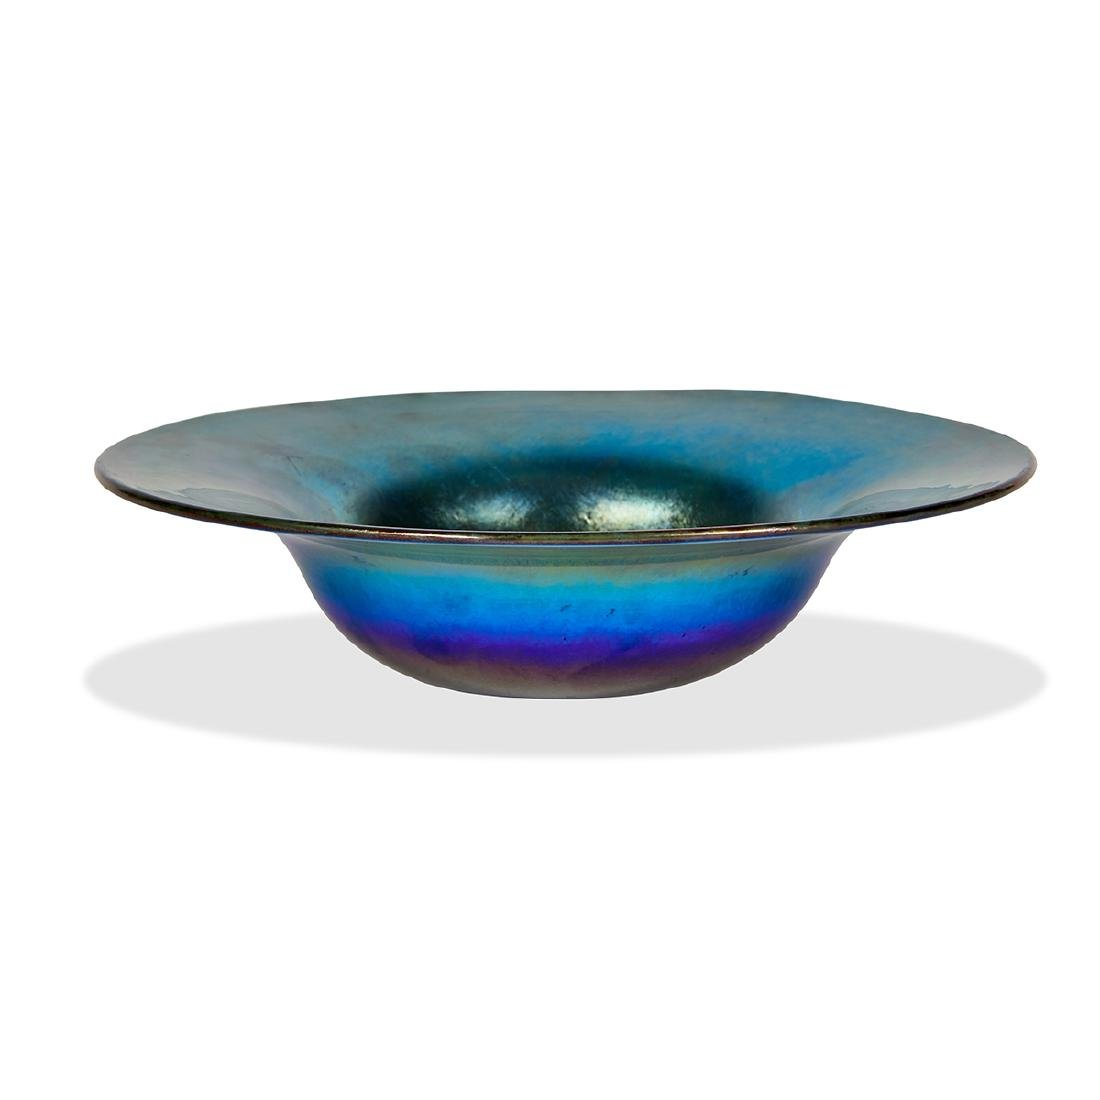 L.C. Tiffany Favrile bowl with flared rim, #X102